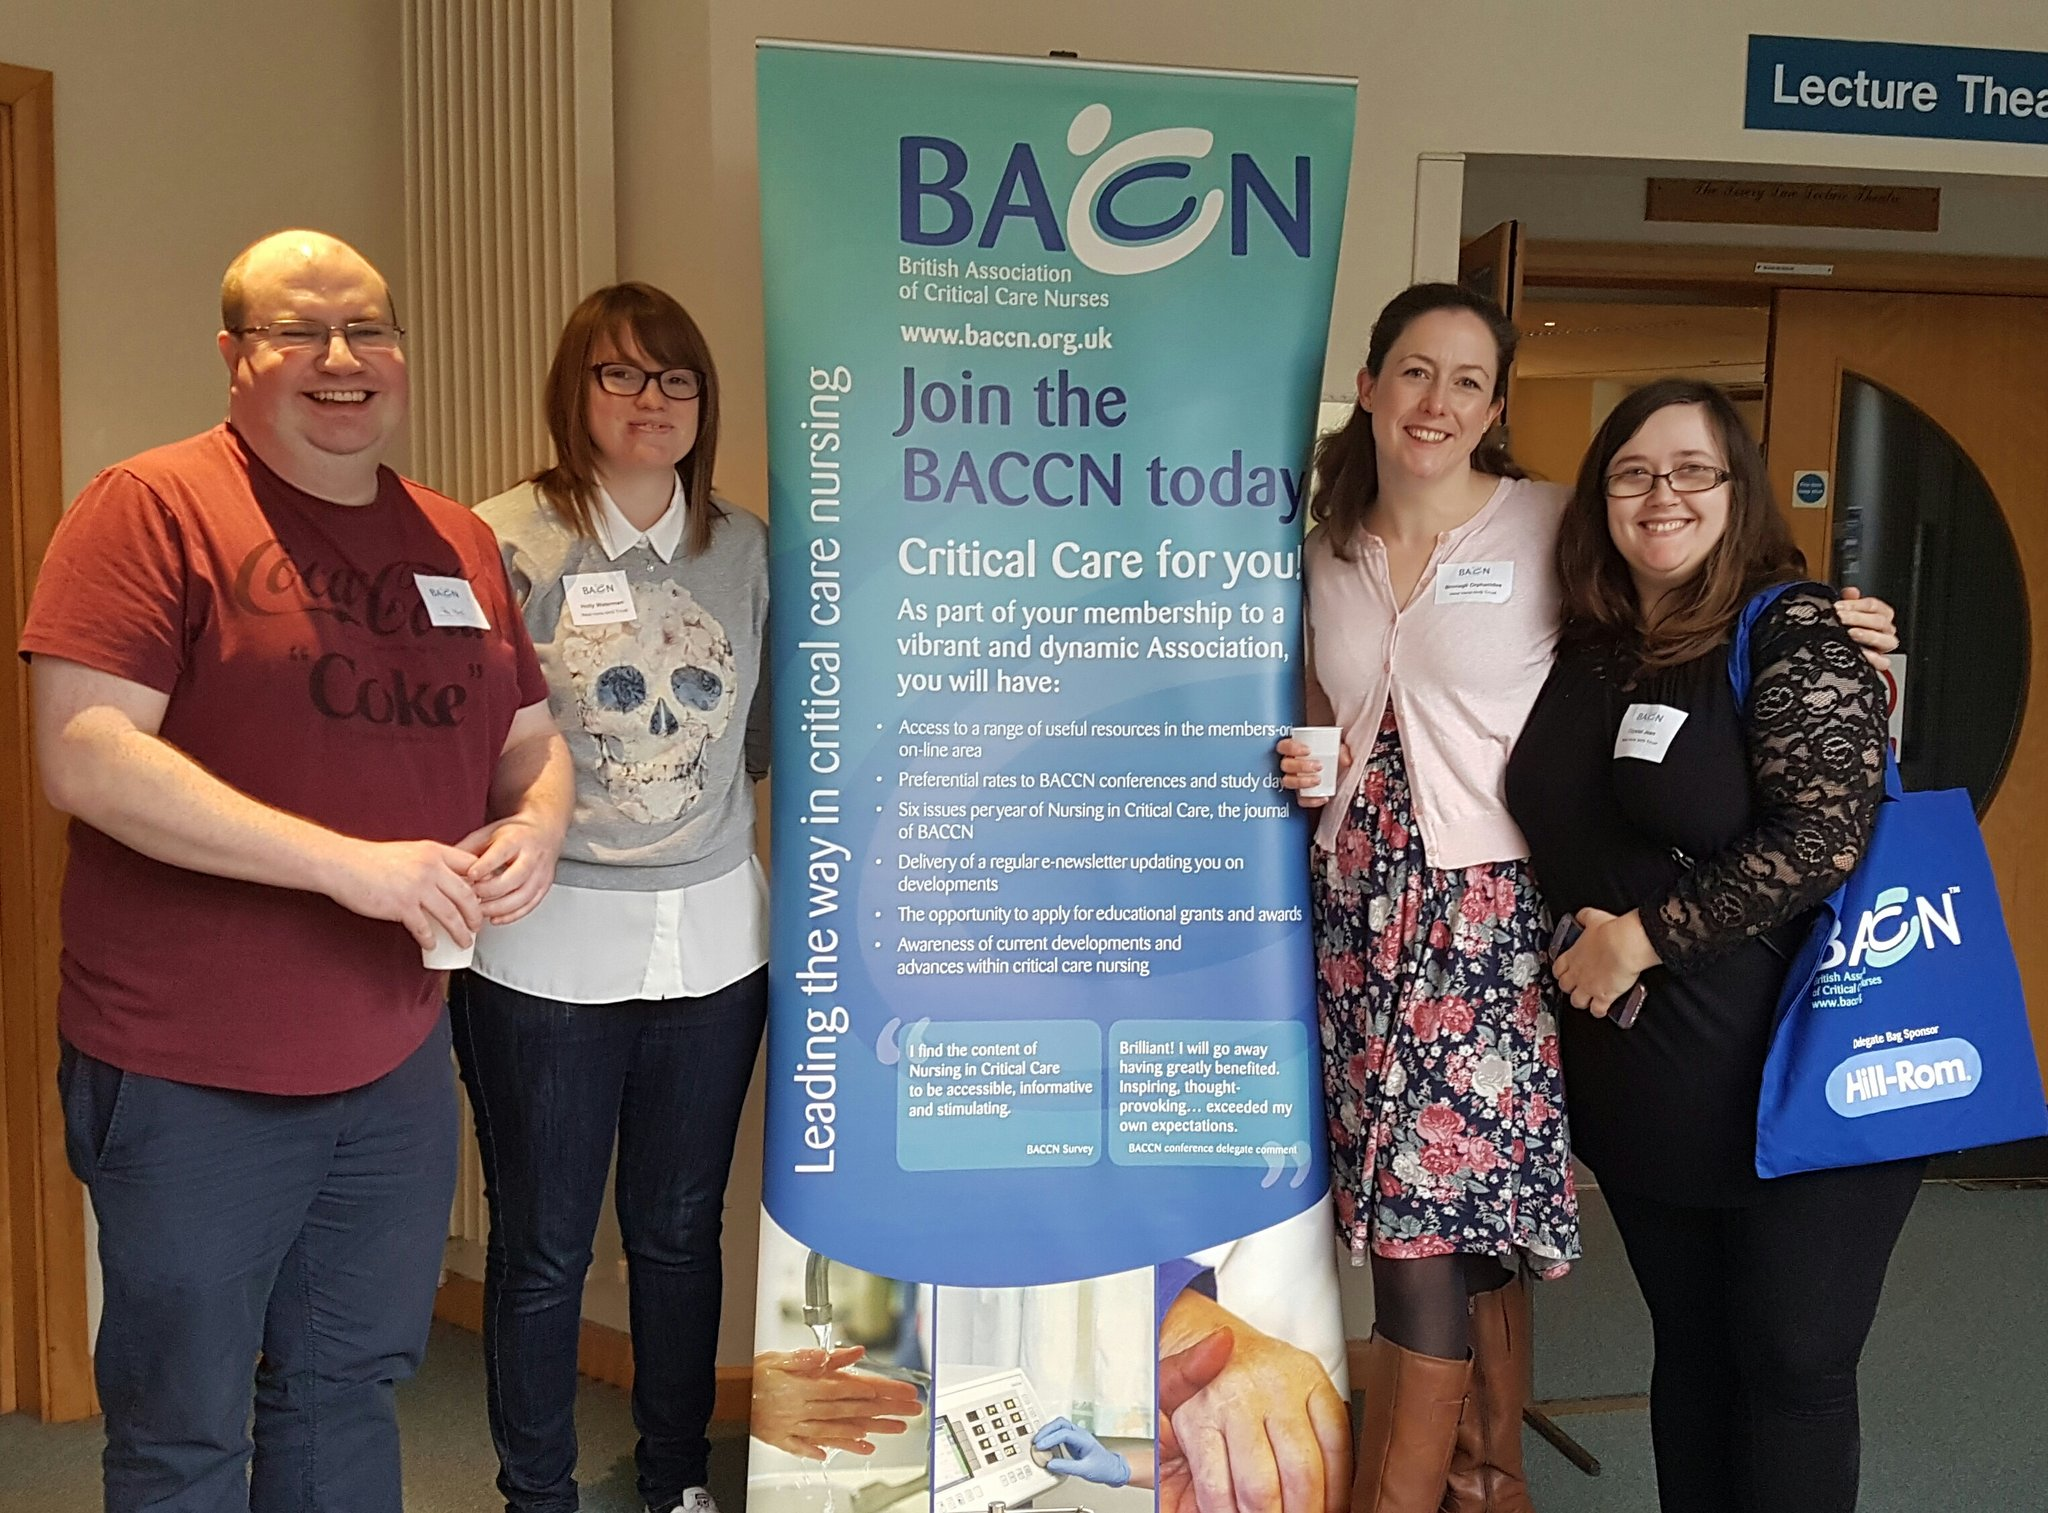 Excited to be at EoL & Organ Donation study day run by @BACCNUK  in Wrexham Park Hospital @WestHertsNHS @WestHertsICU  #CSEoL' https://t.co/LlCjxhXeNc